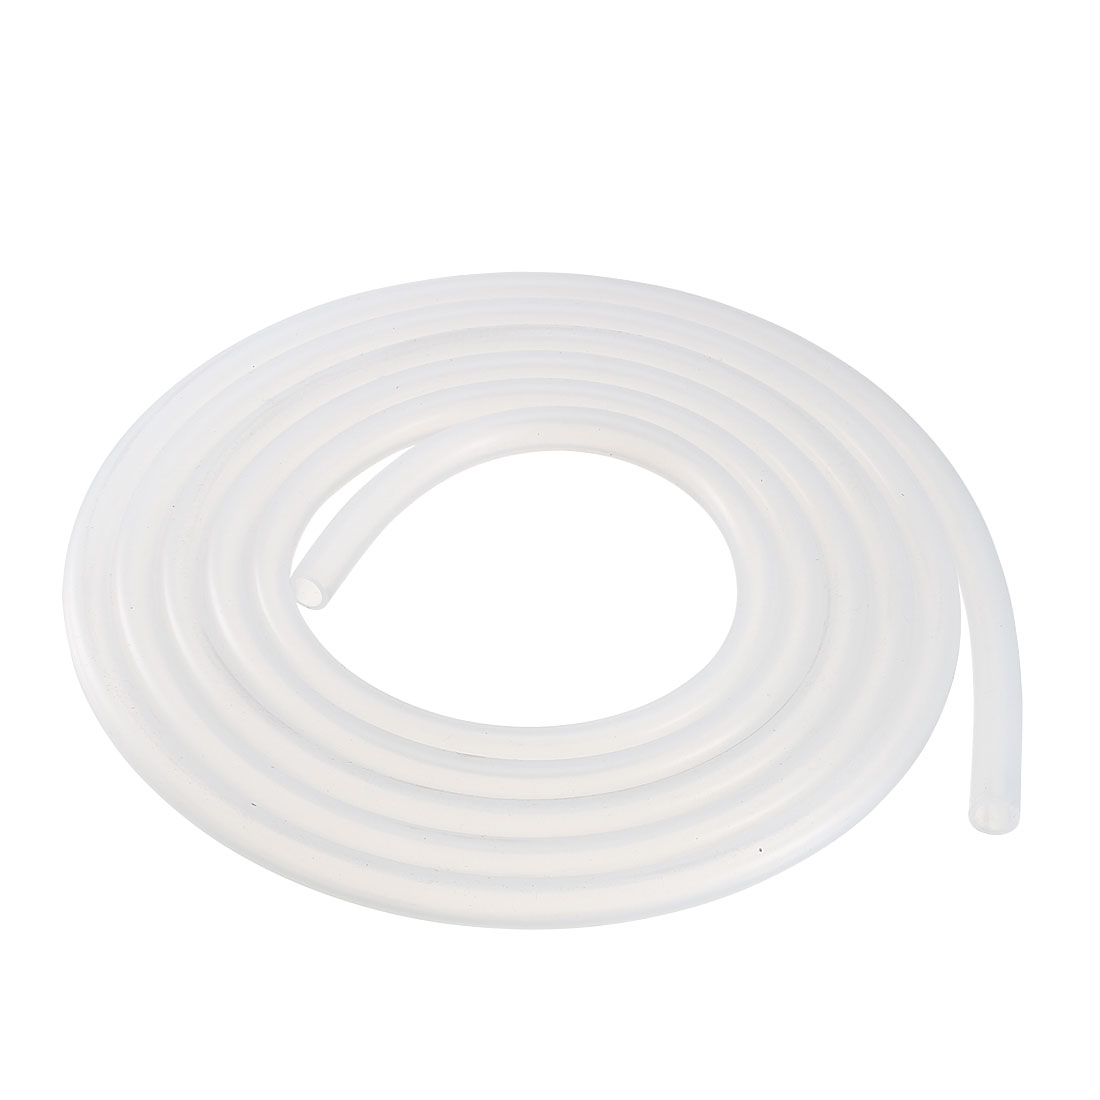 6mm x 8mm Silicone Vacuum Translucent Tube Beer Water Air Pump Hose Pipe 2 Meters Long